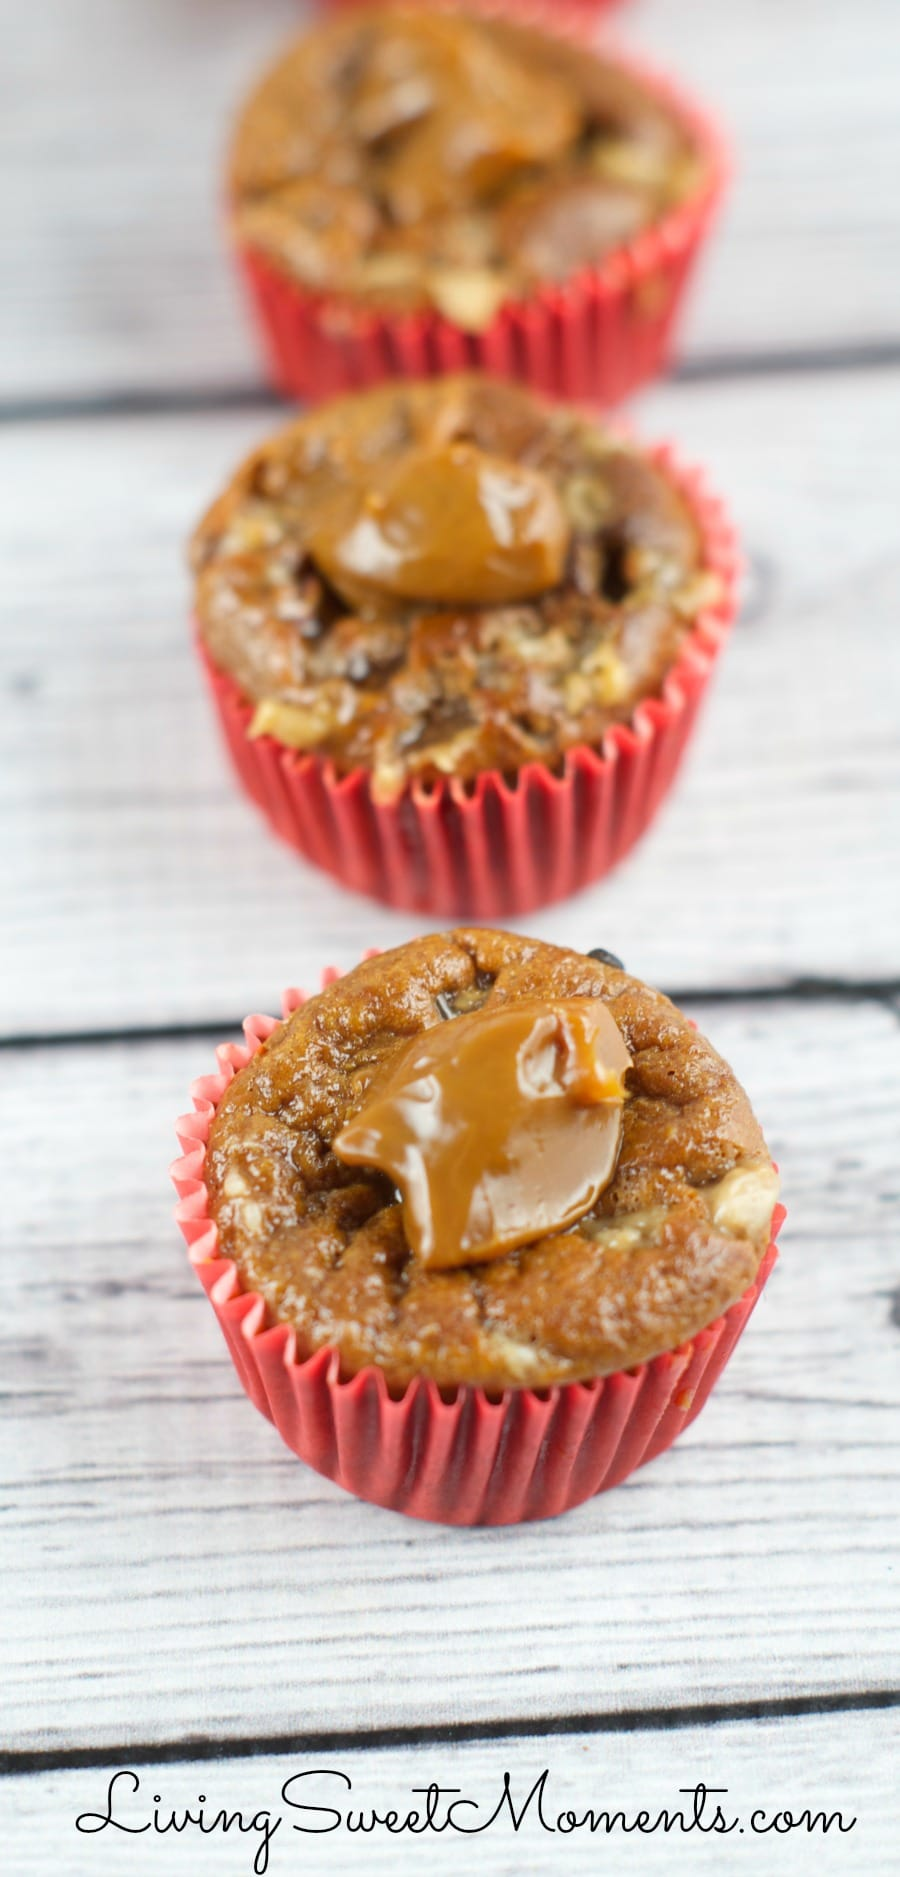 Banana Caramel Muffins - Gluten free muffins made in the blender! Just 5 ingredients are needed to make the moistest and most delicious muffins you will ever try.